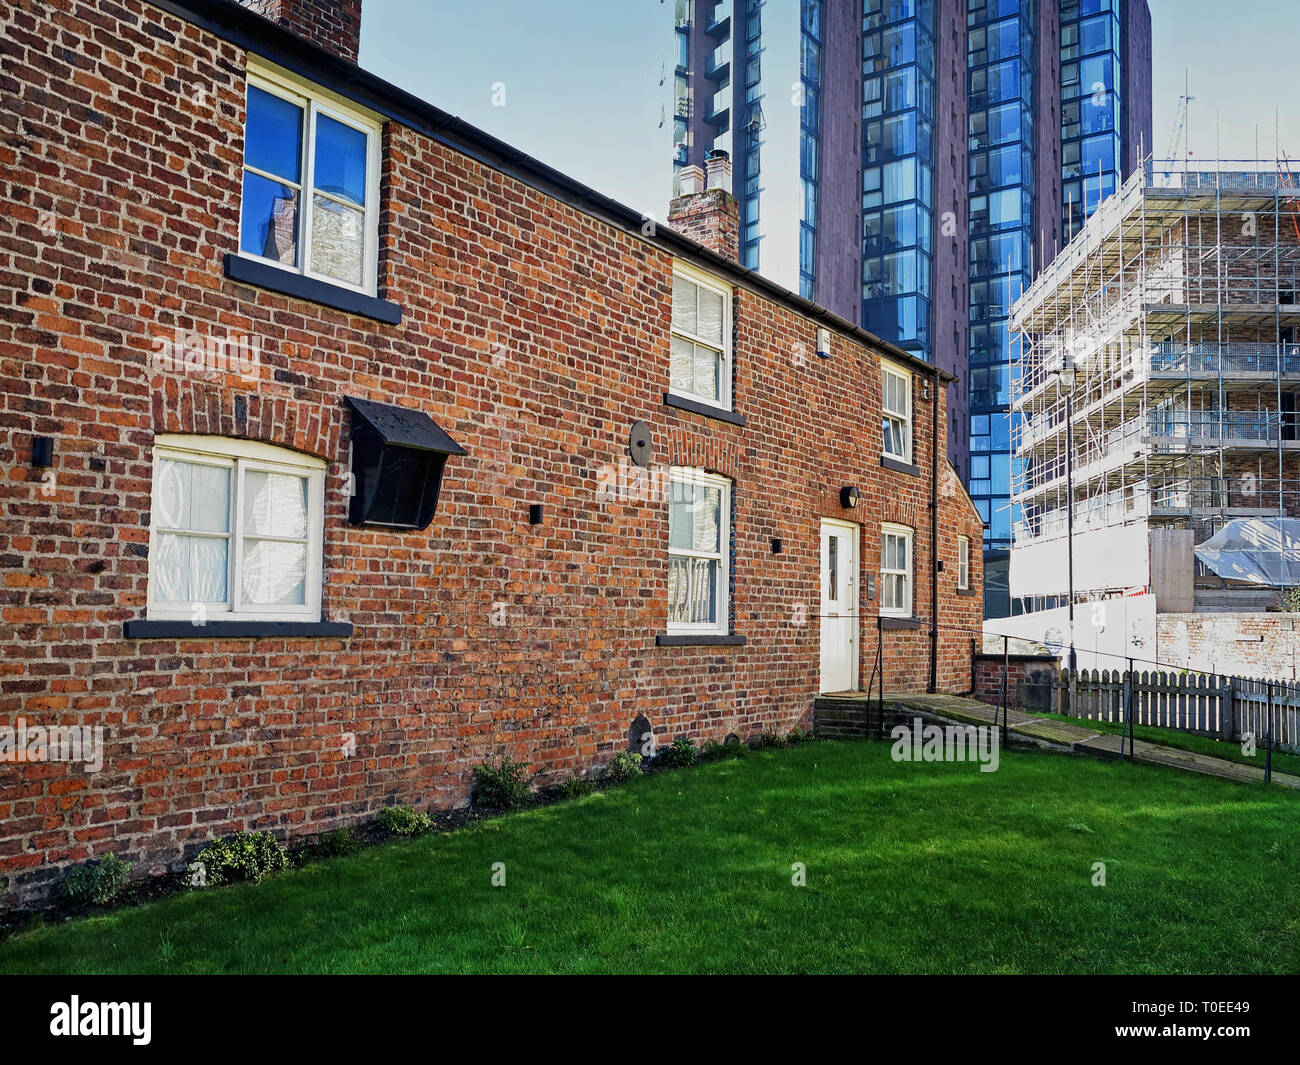 Stages of development by Canal Cottage on the Ashton Canal, Ancoats, Manchester - Stock Image